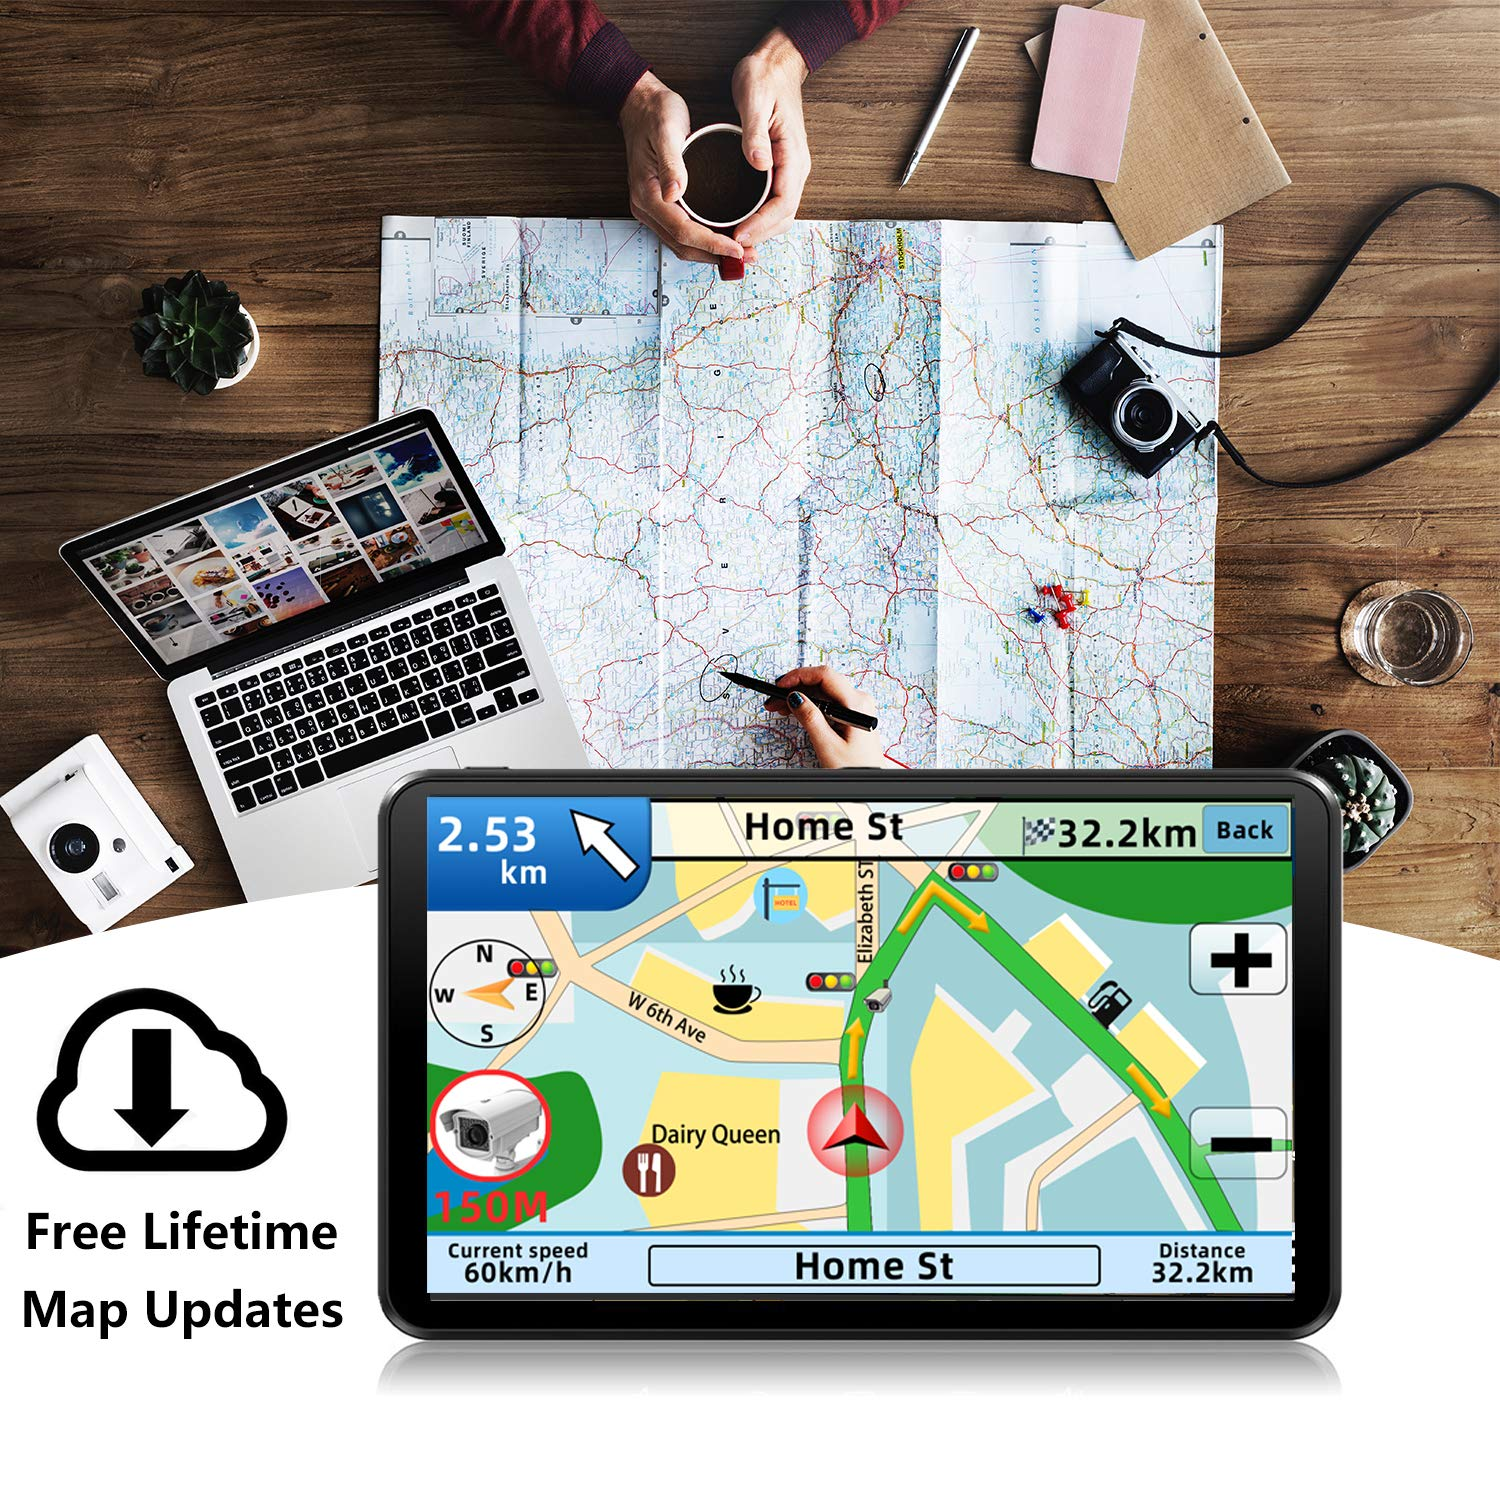 GPS Navigation for car,7 Inch GPS Navigation System, 8GB 256MB Car Navigation, Touch Screen Real Voice Direction 2019 Latest Maps Free Updates by Anstar (Image #3)